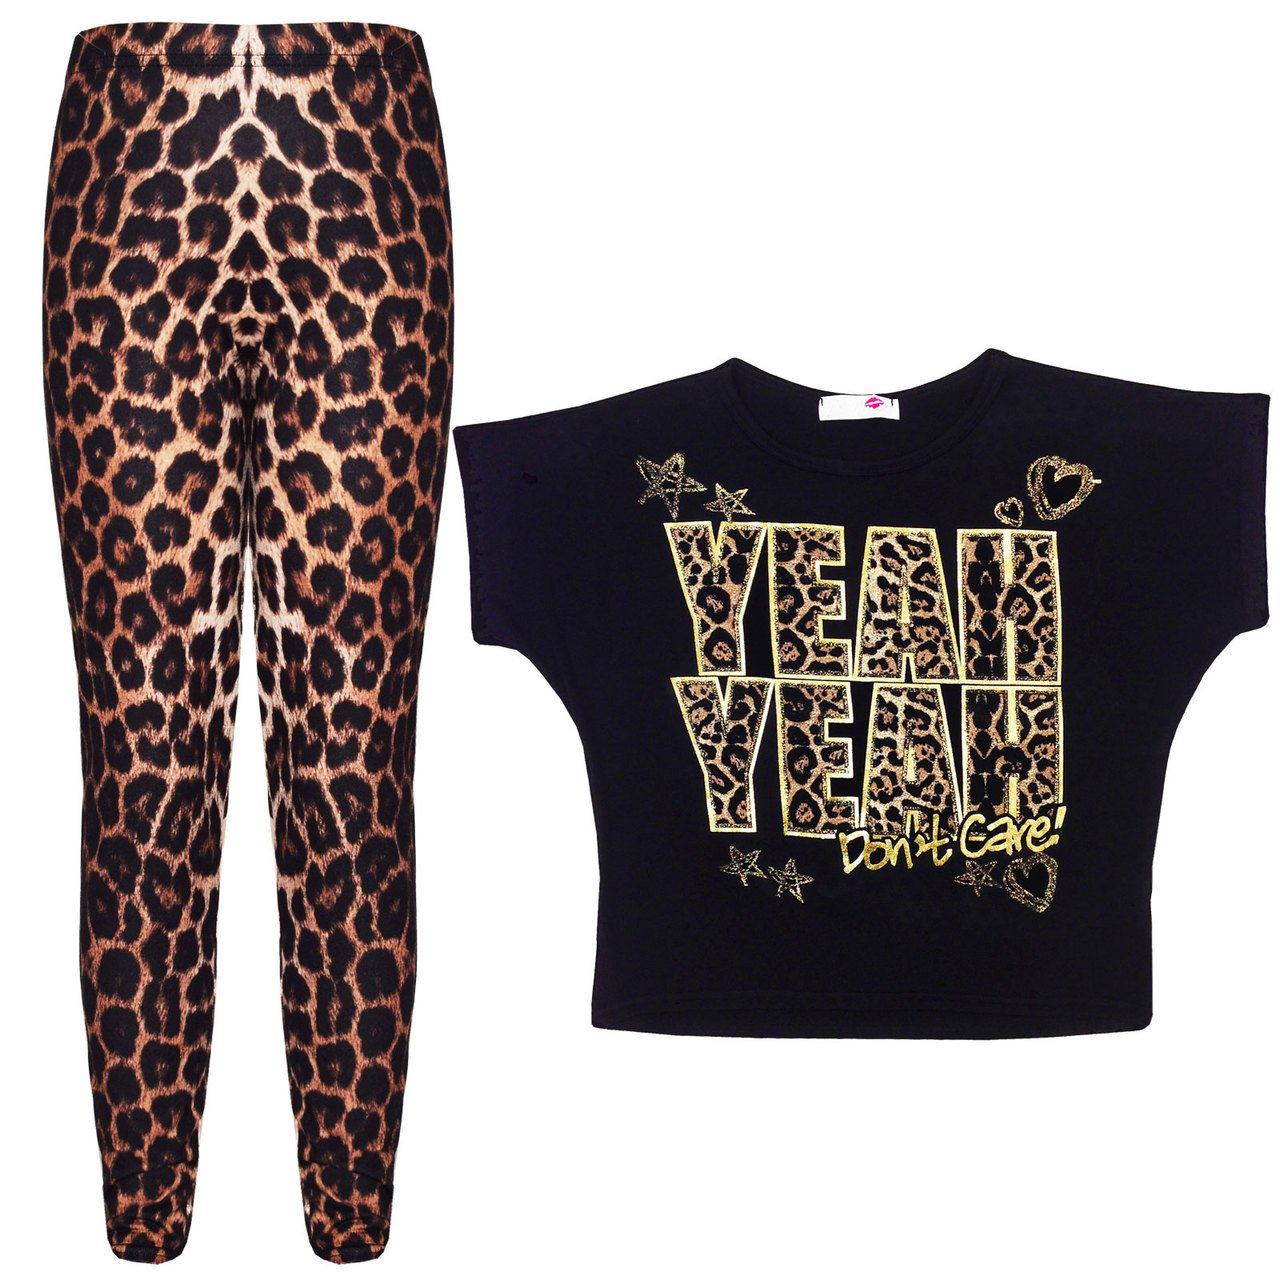 A2Z 4 Kids® New Girls YEAH YEAH Print Party Fashion Top T Shirt & Leopard Legging Set New Age 7-13 Years